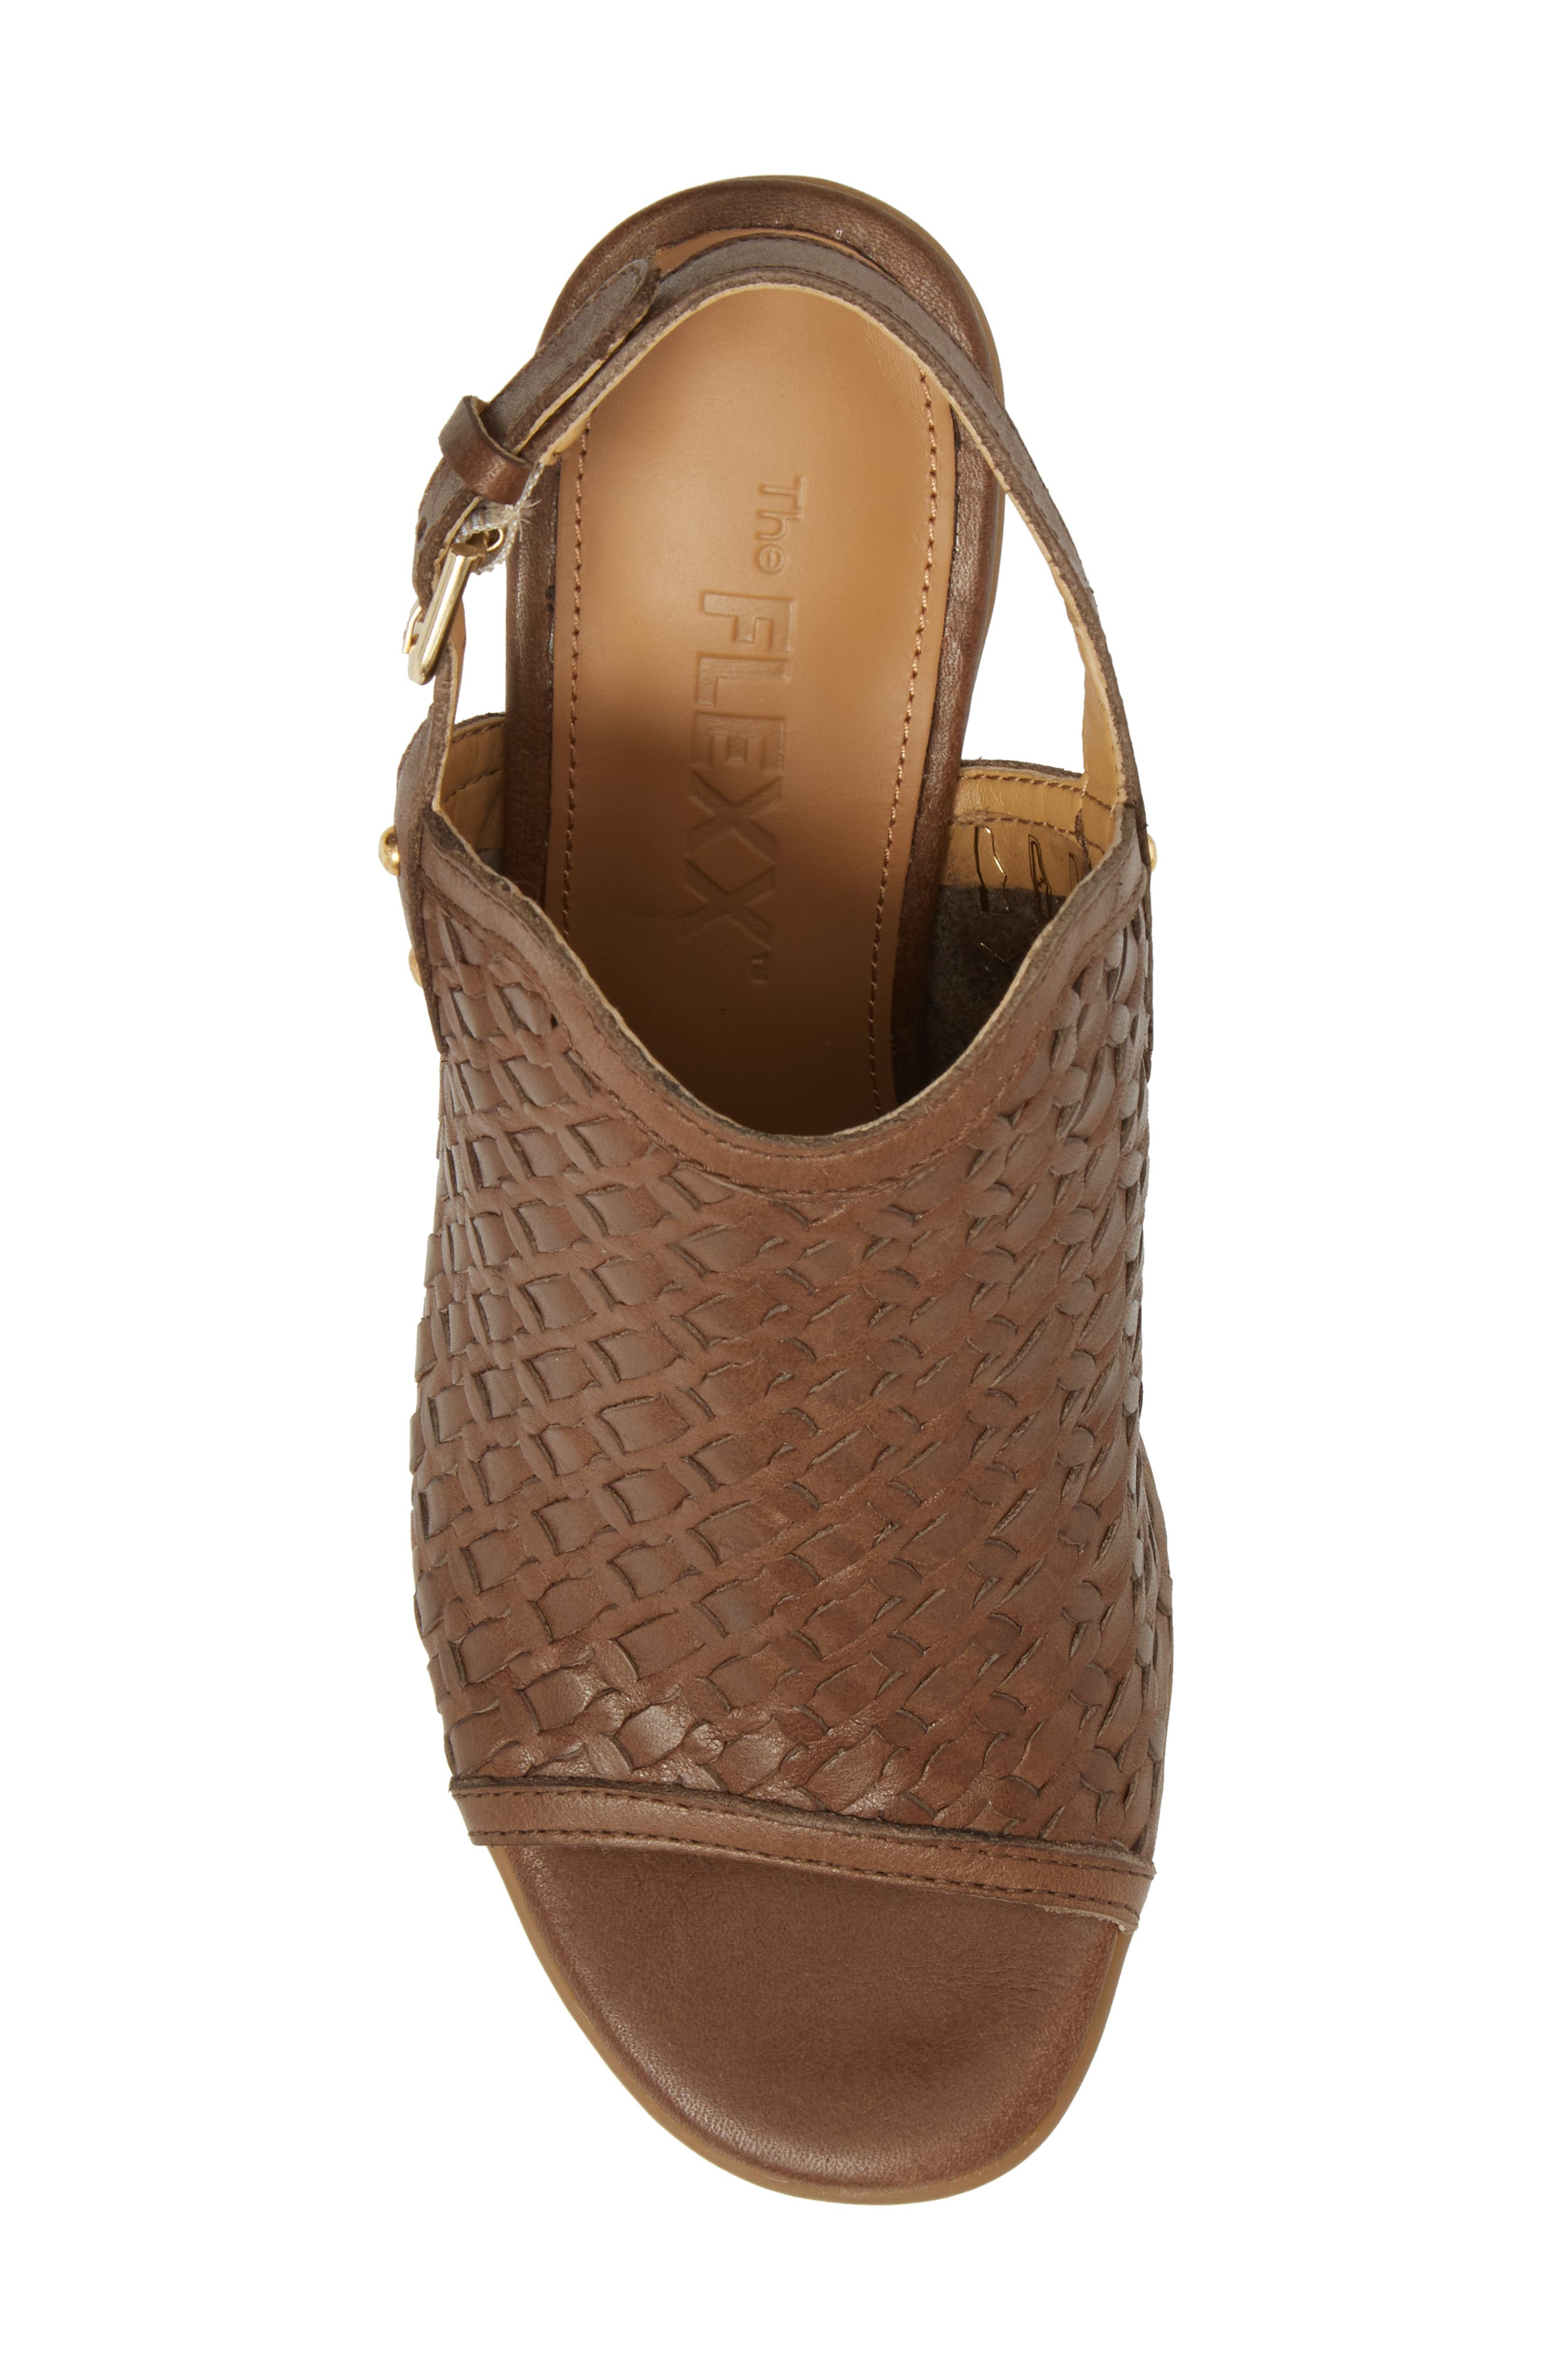 Weave Me Be Slingback Sandal,                             Alternate thumbnail 5, color,                             CHOCOLATE LEATHER